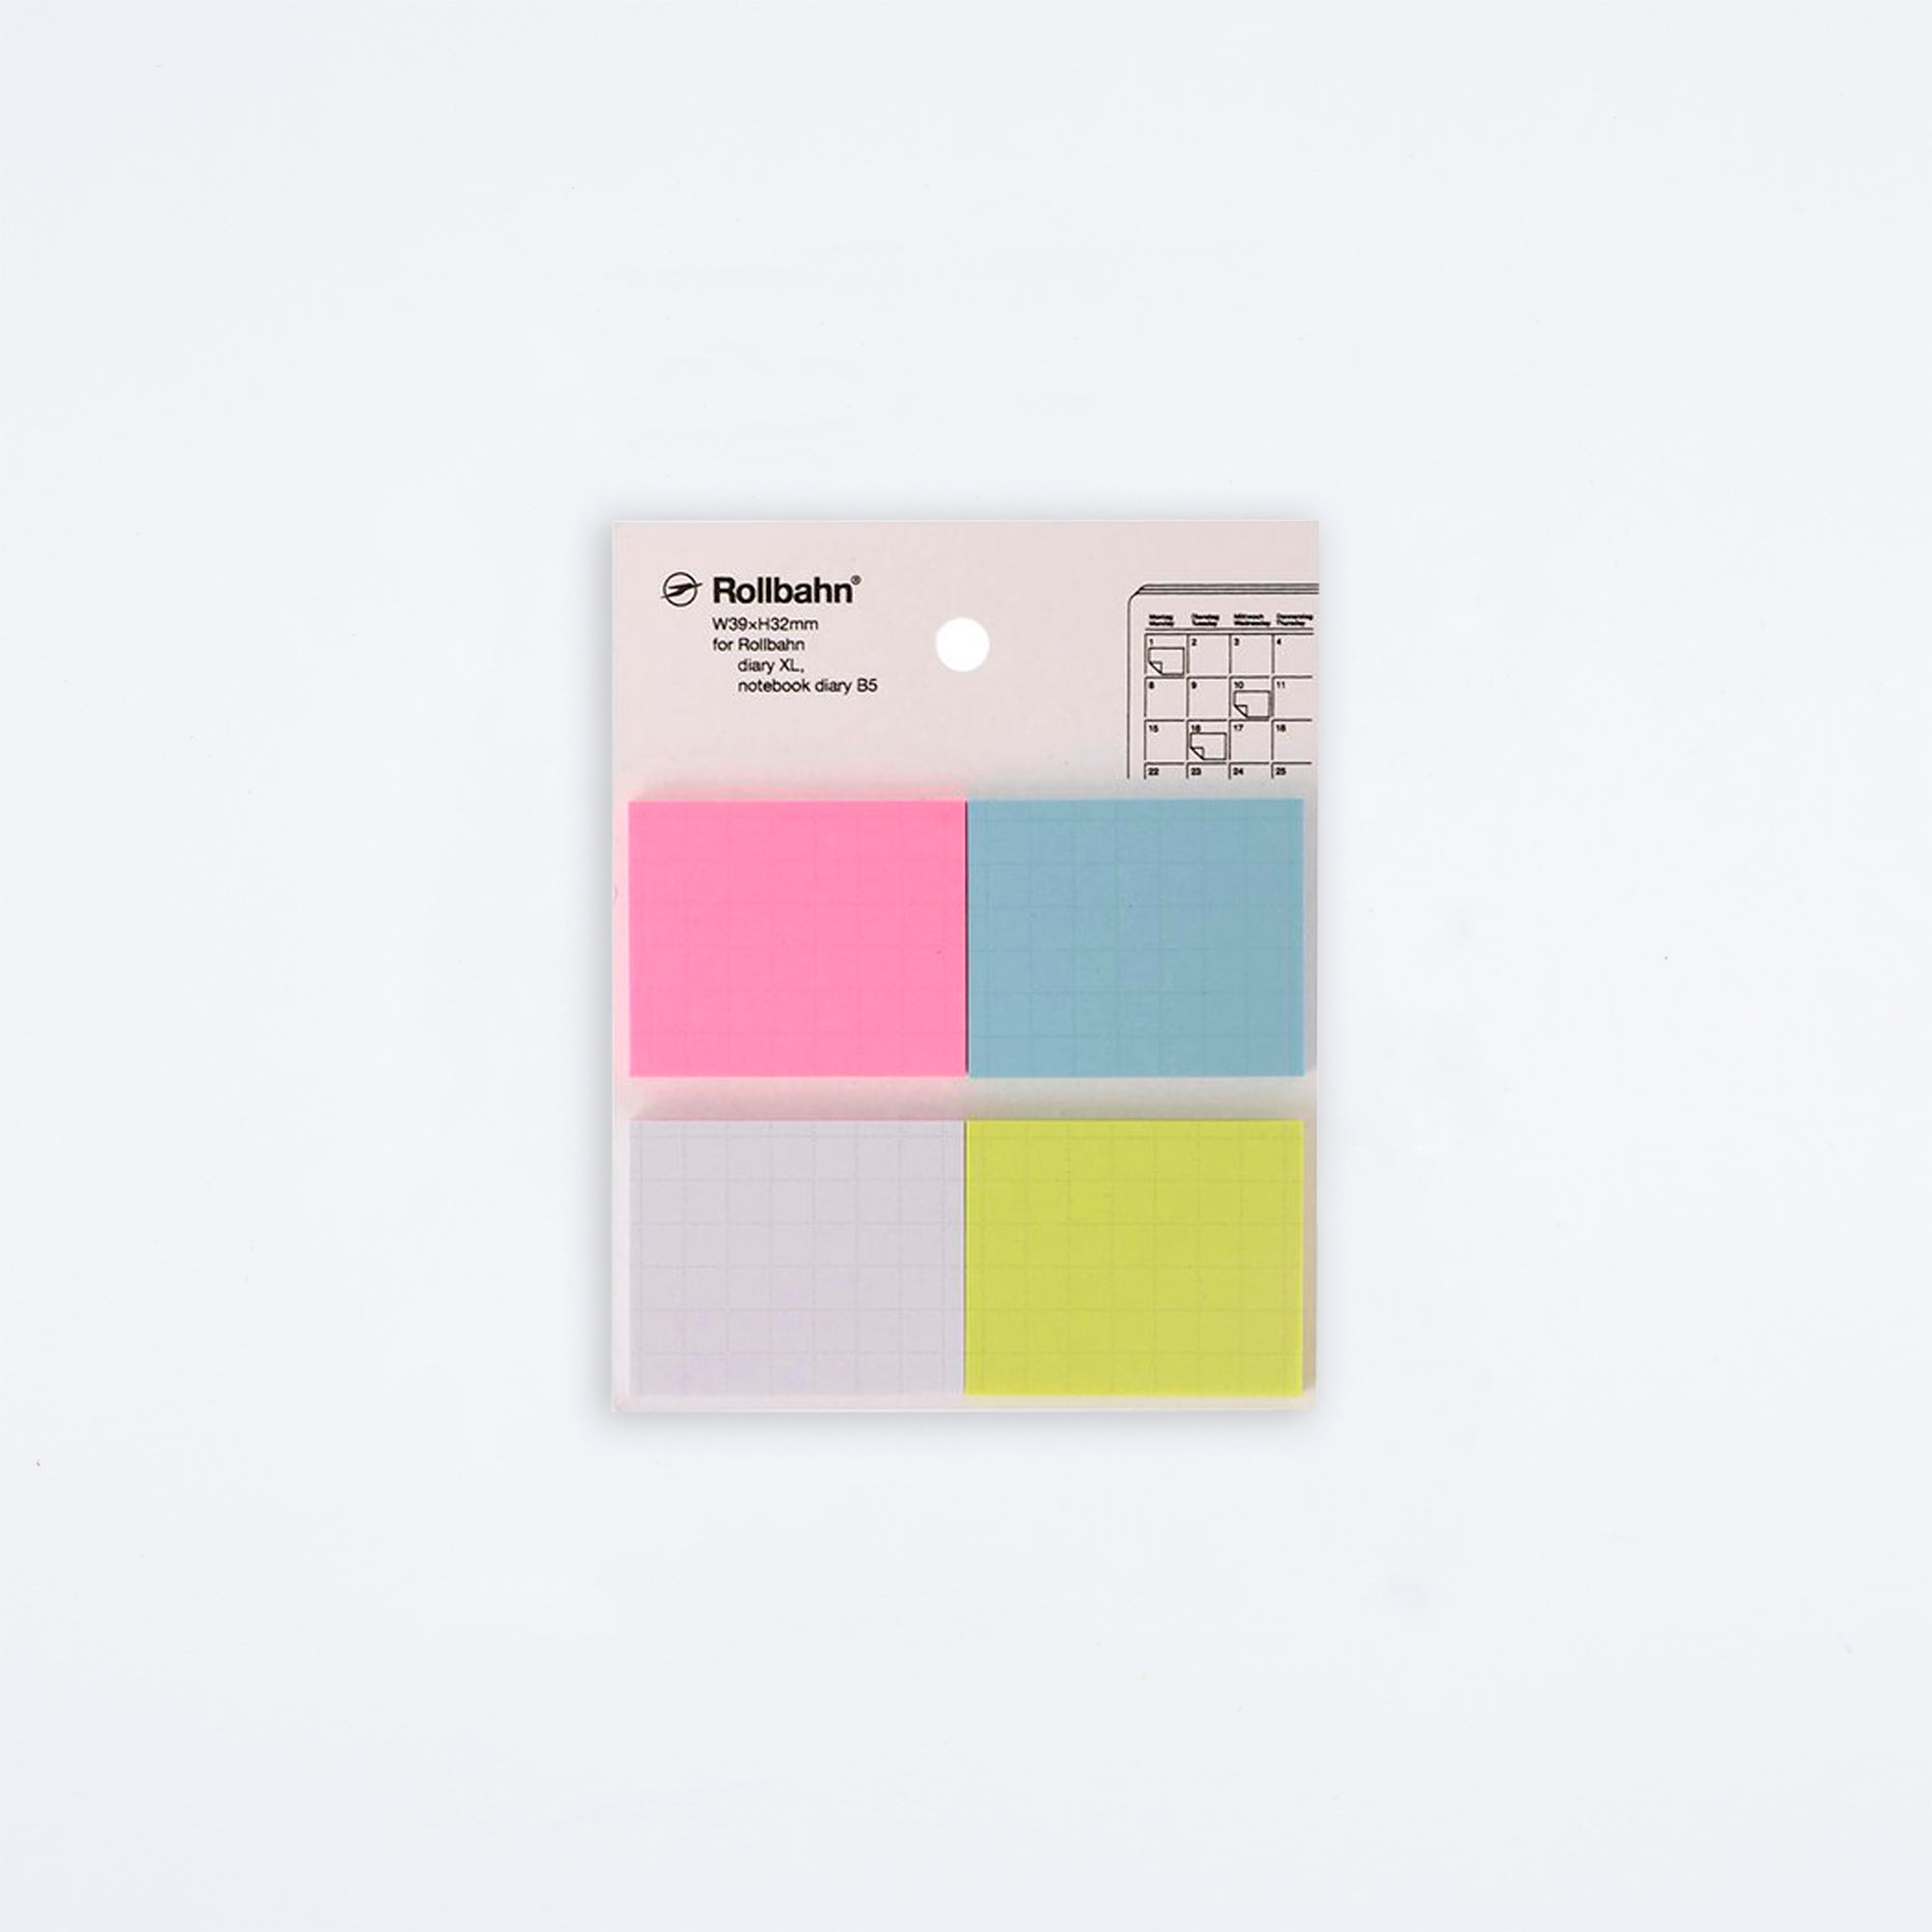 Rollbahn Four Color Sticky Note Set